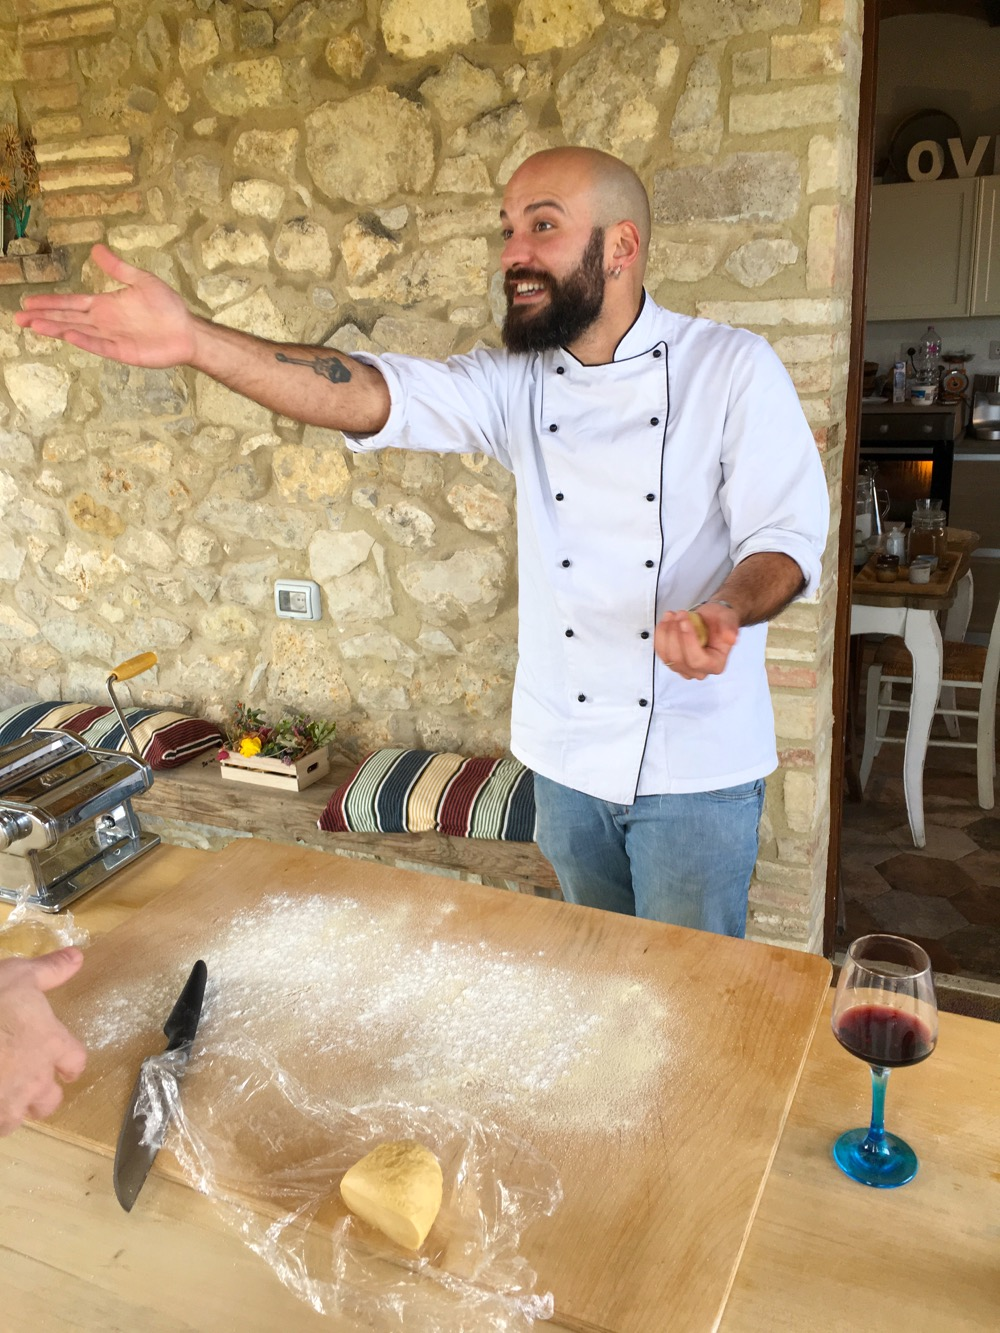 Our cooking instruction. He was so much fun, full of energy and made cooking pasta from scratch easy.